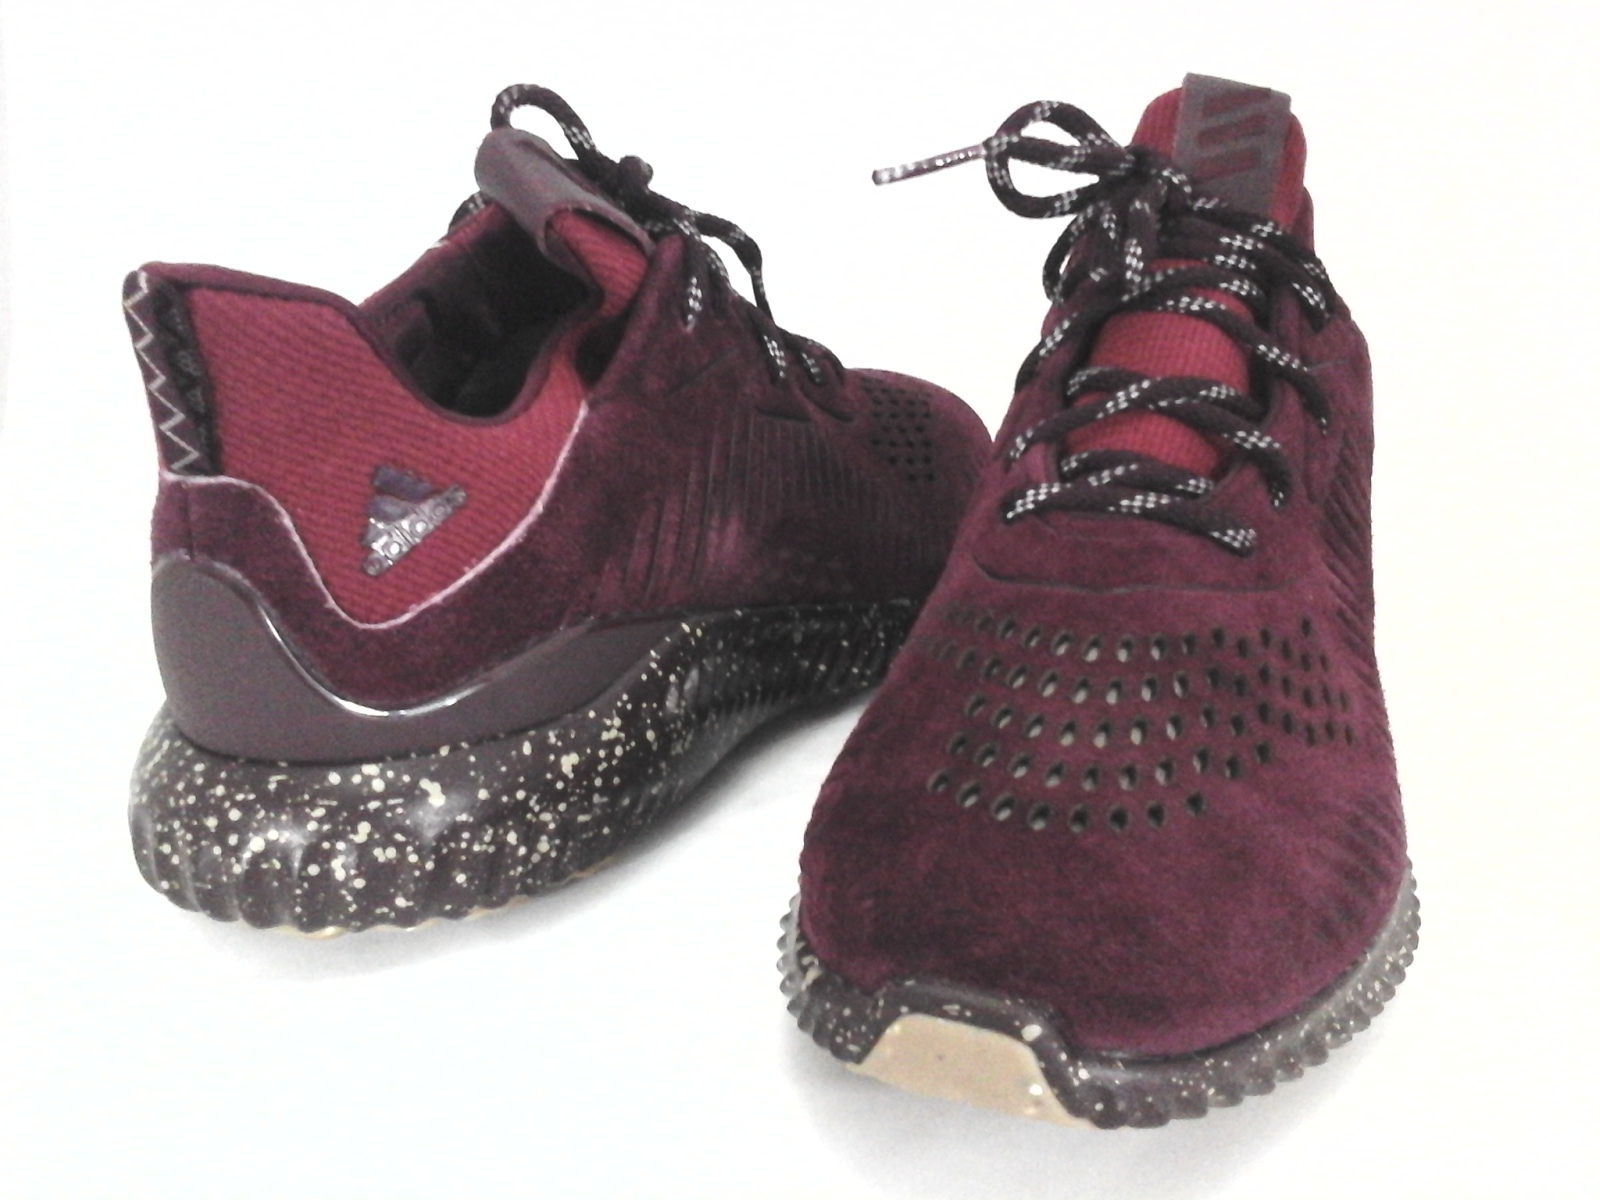 san francisco c254b e3a0c ADIDAS Alphabounce Shoes Sneakers Maroon Red Suede CQ1189 Mens US 13 EU 48  New